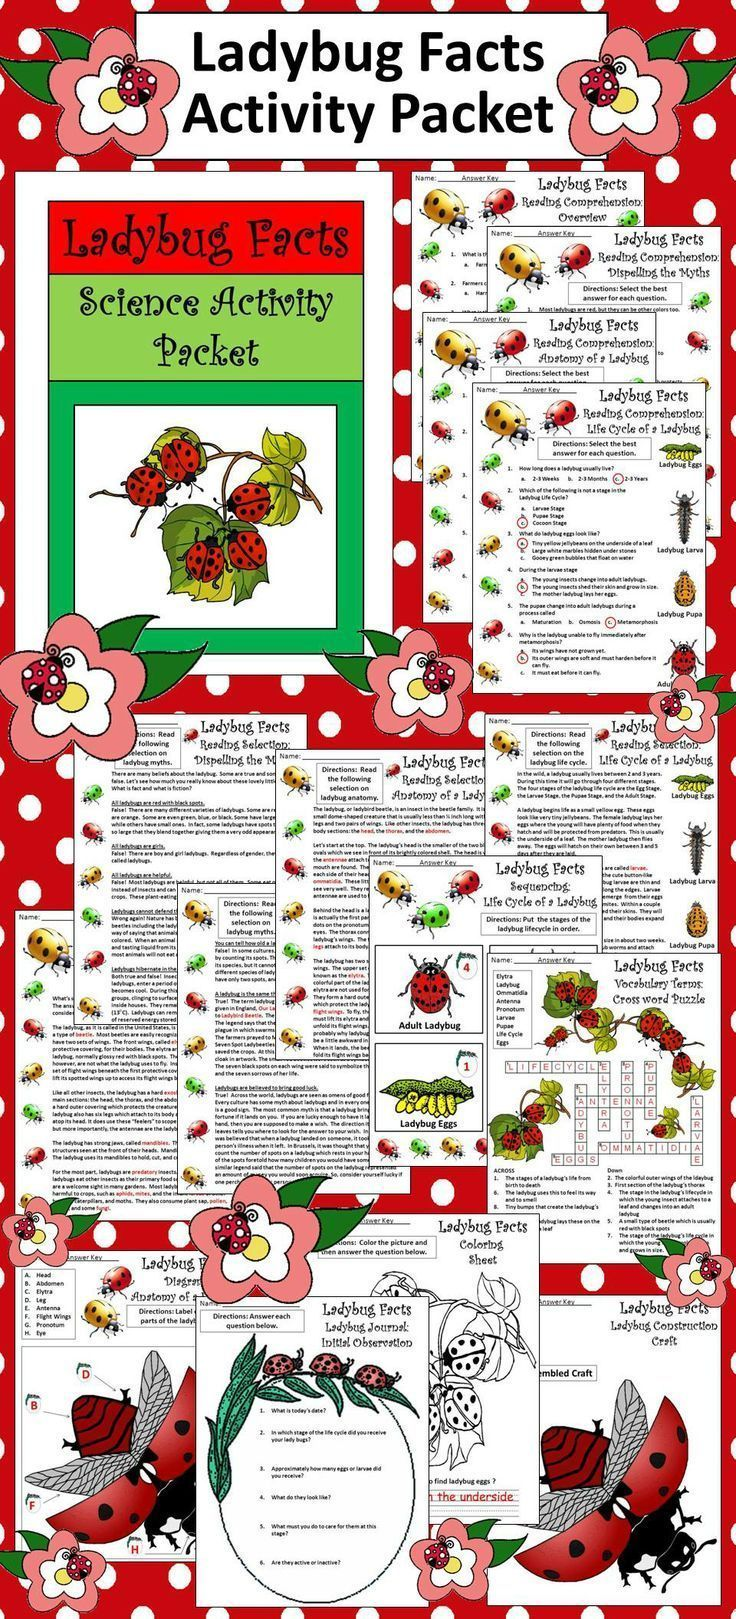 Ladybug Facts Activity Packet: This colorful activity packet explores one of the most beloved insects on Earth, the Ladybug or Ladybird Beetle.  Contents include: * 4 Reading Selections & Quizzes - Overview of the Ladybug, Dispelling the Ladybug Myths, Th